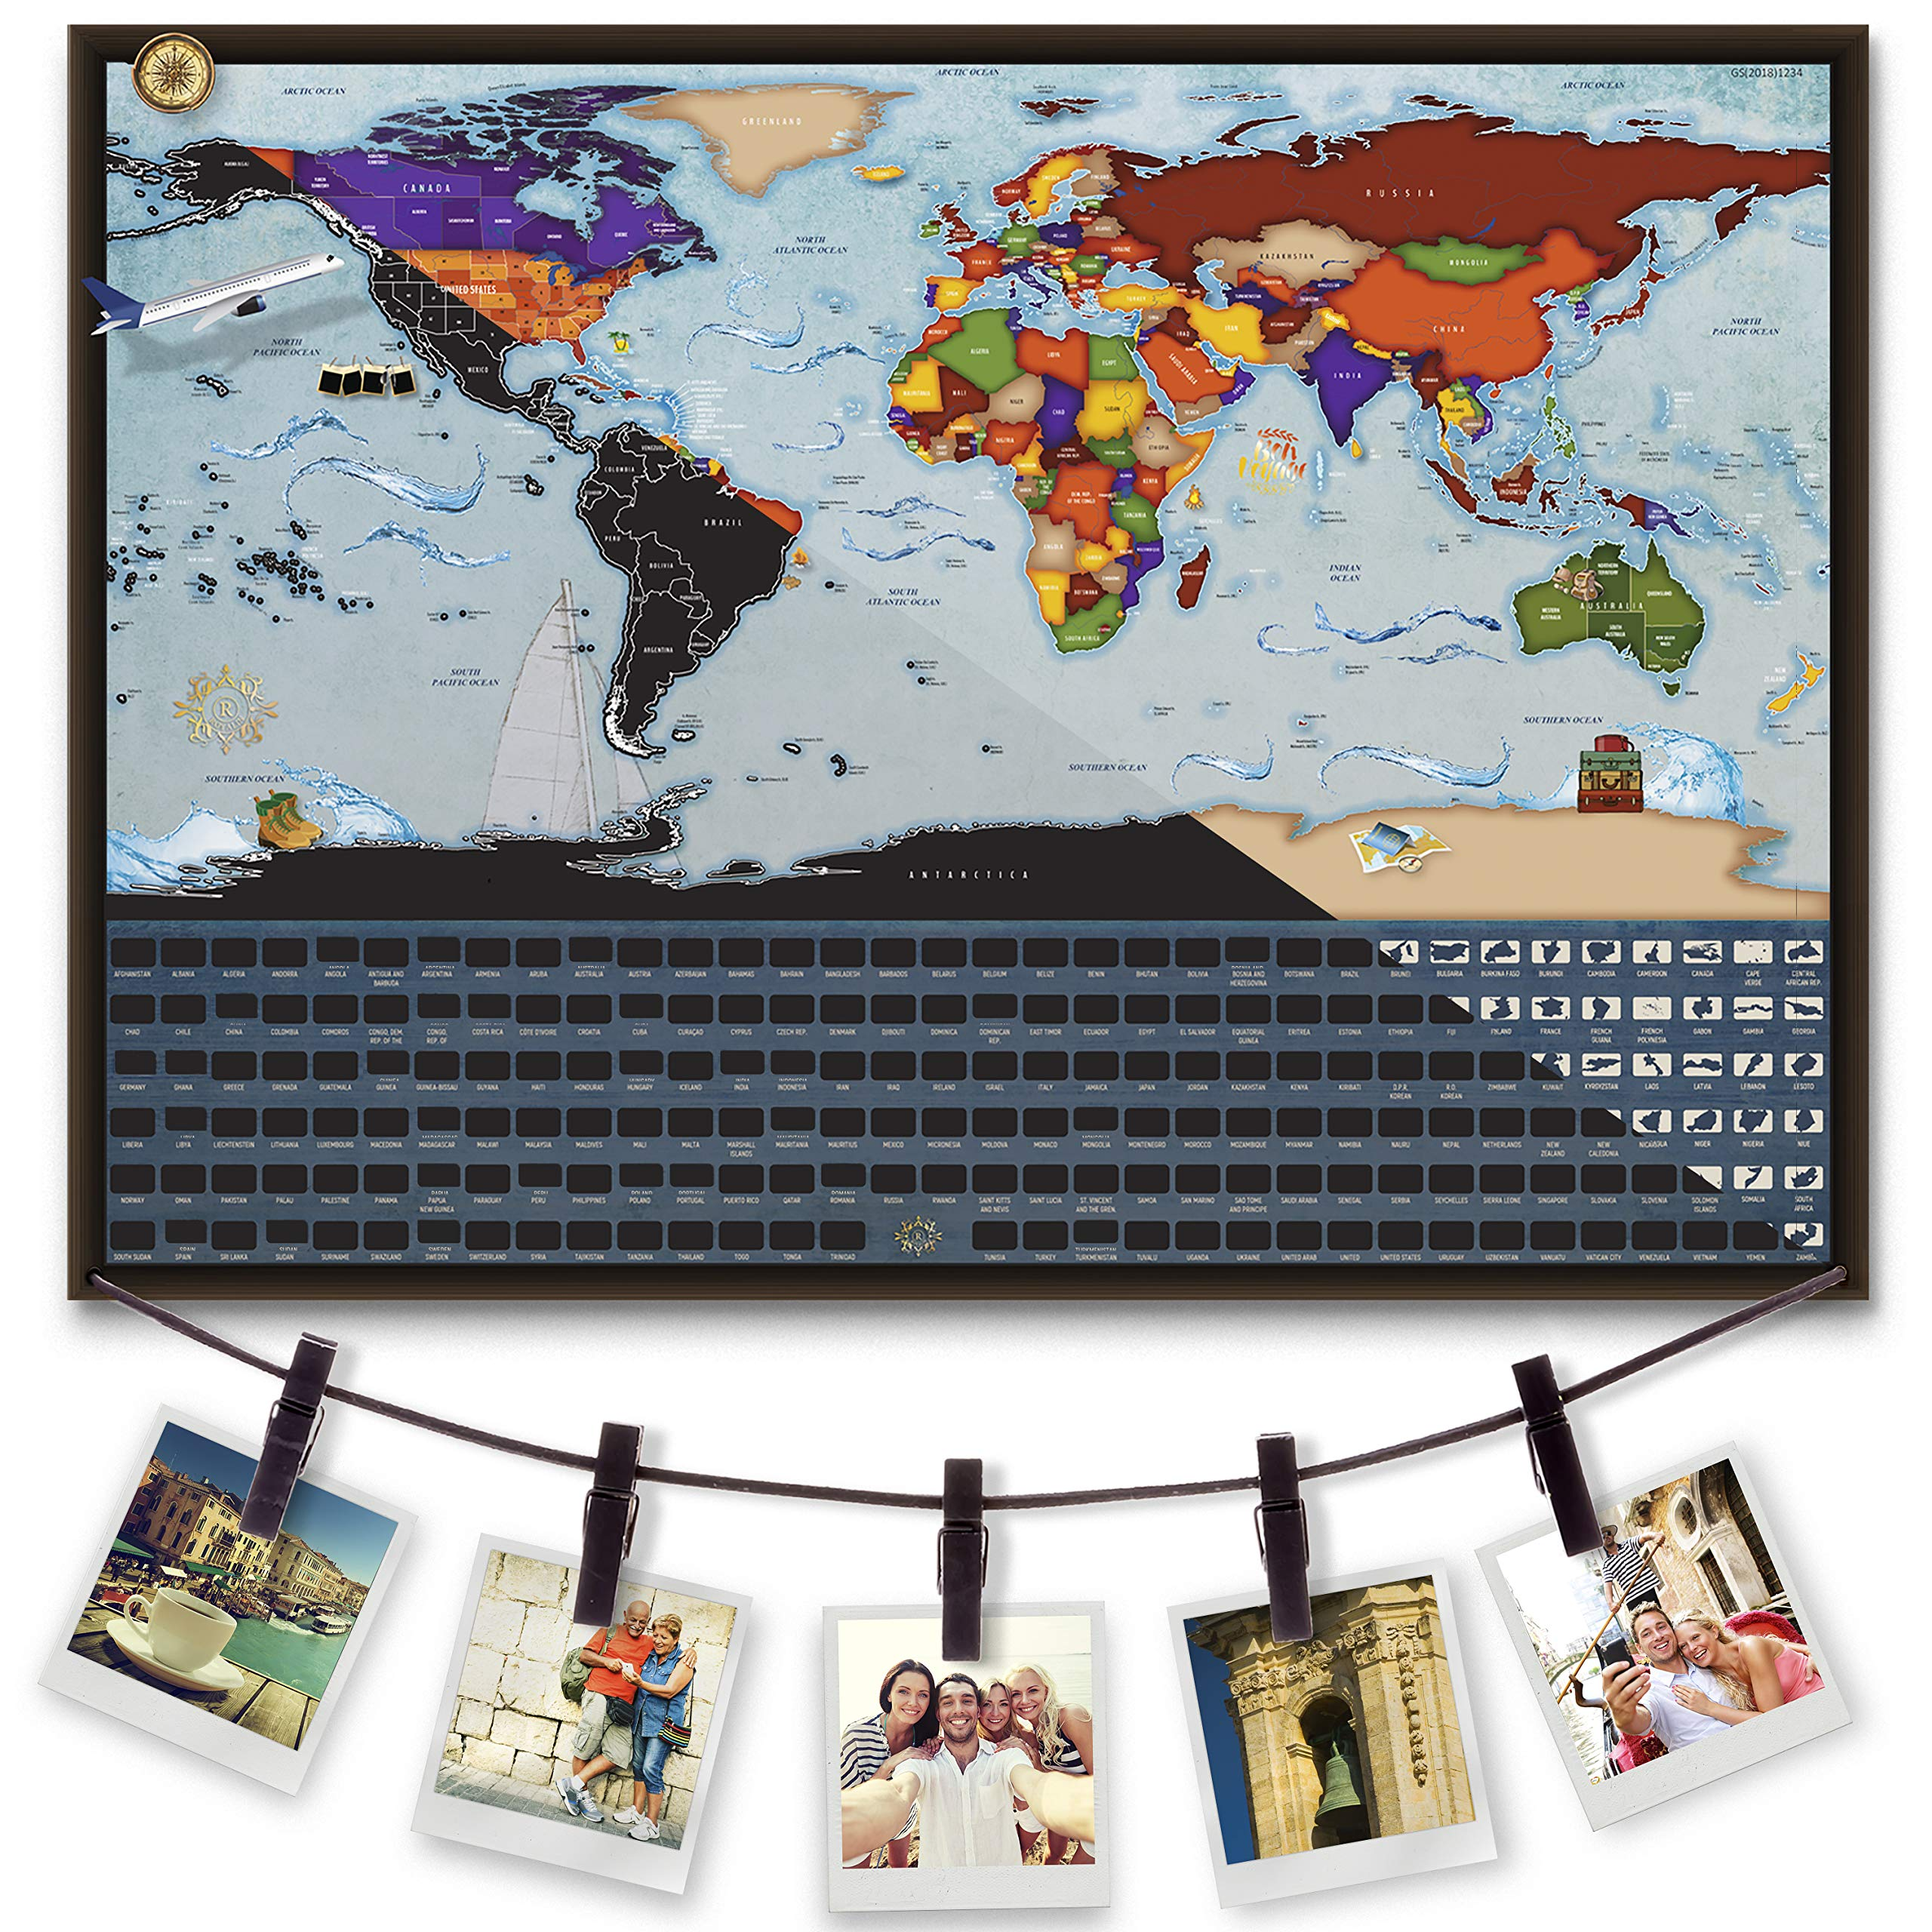 Scratch Off World Map with Hanging Rope: 17 x 24 Inch Travel Poster, Including Pins, Mounting Stickers, and Scratching Pen. by Royalin